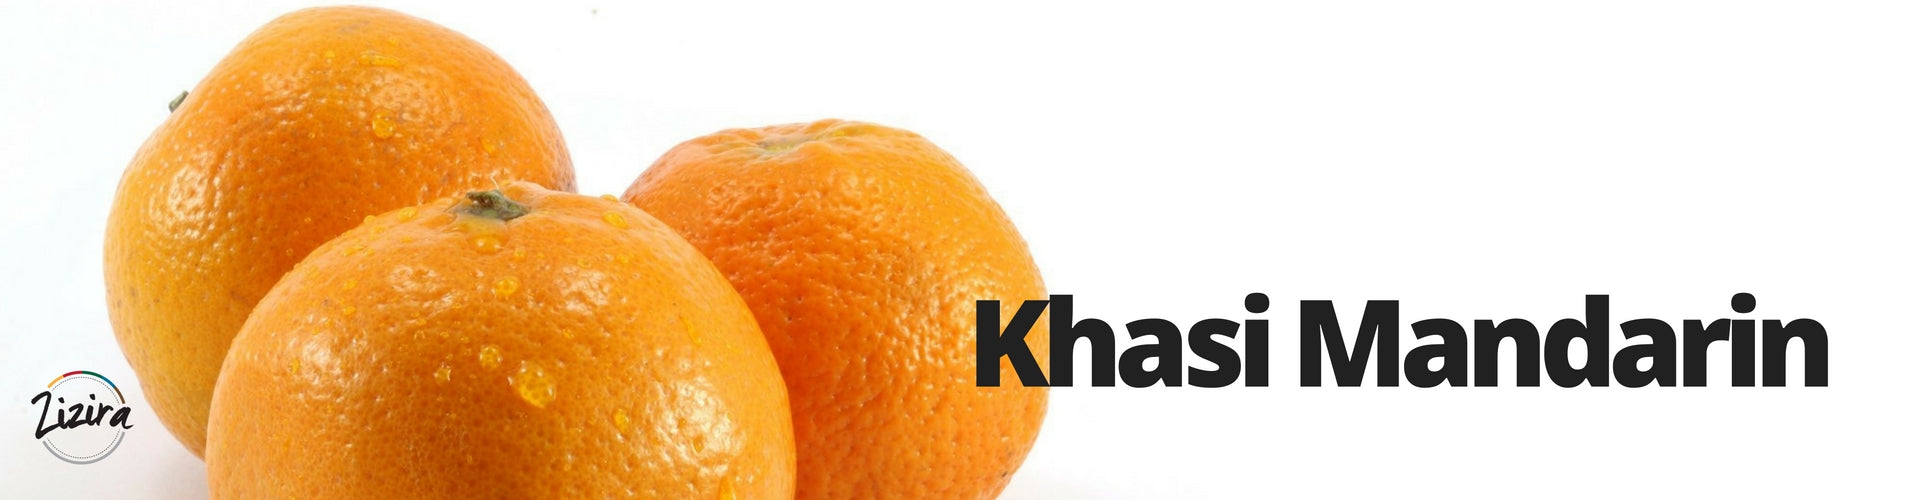 Khasi Mandarin of Meghalaya, a Rare and Unique Citrus Species